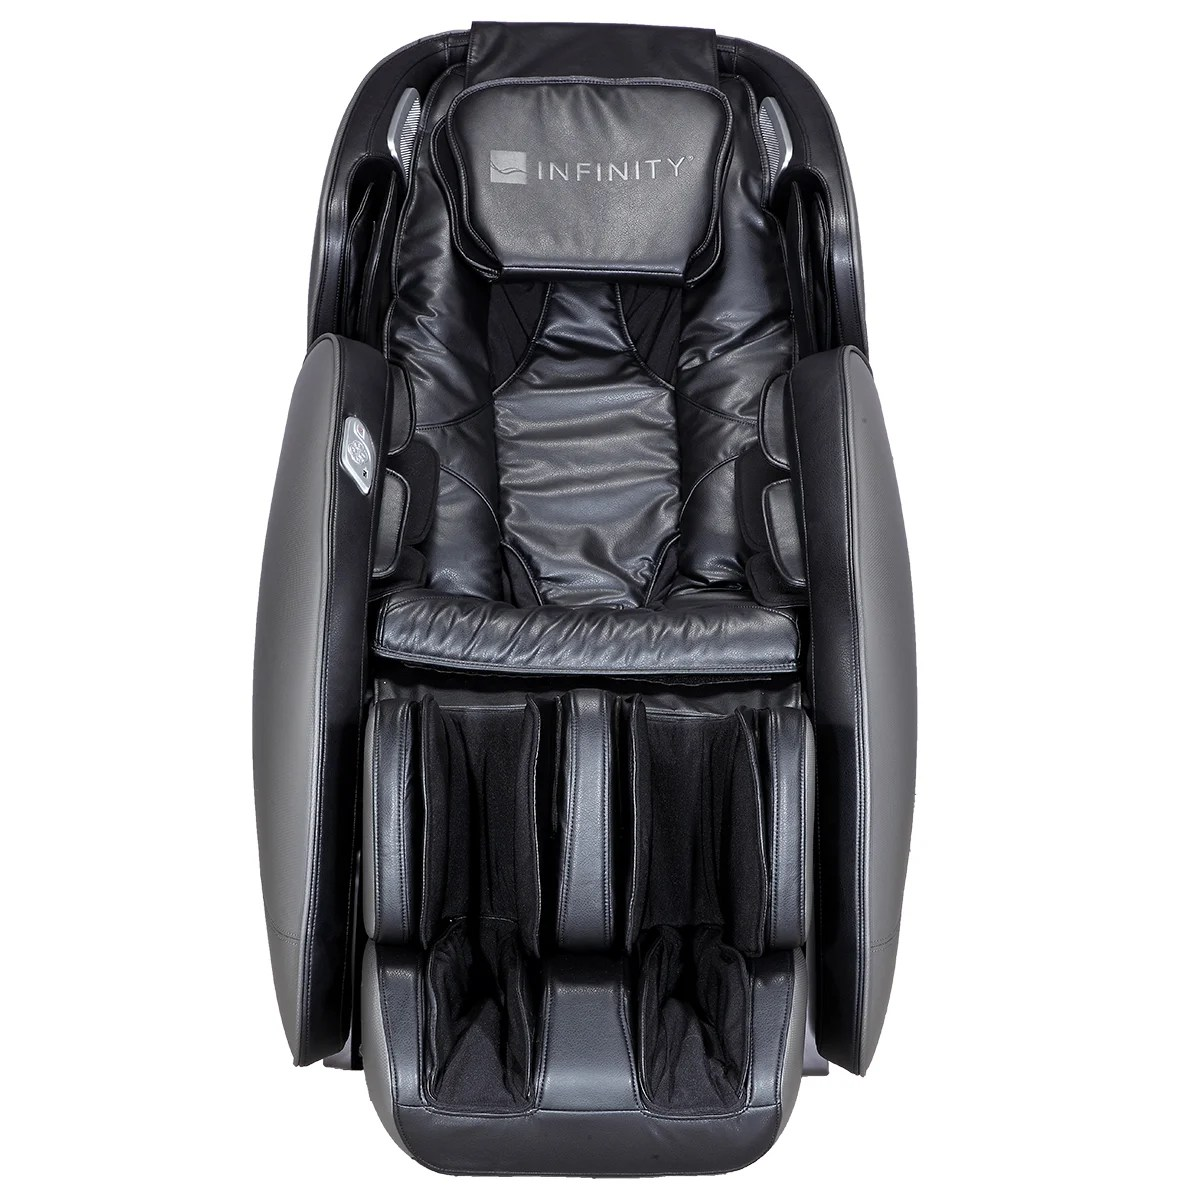 Body Built Chairs Infinity Meridian Full Body Massage Chair Wayfair Ca